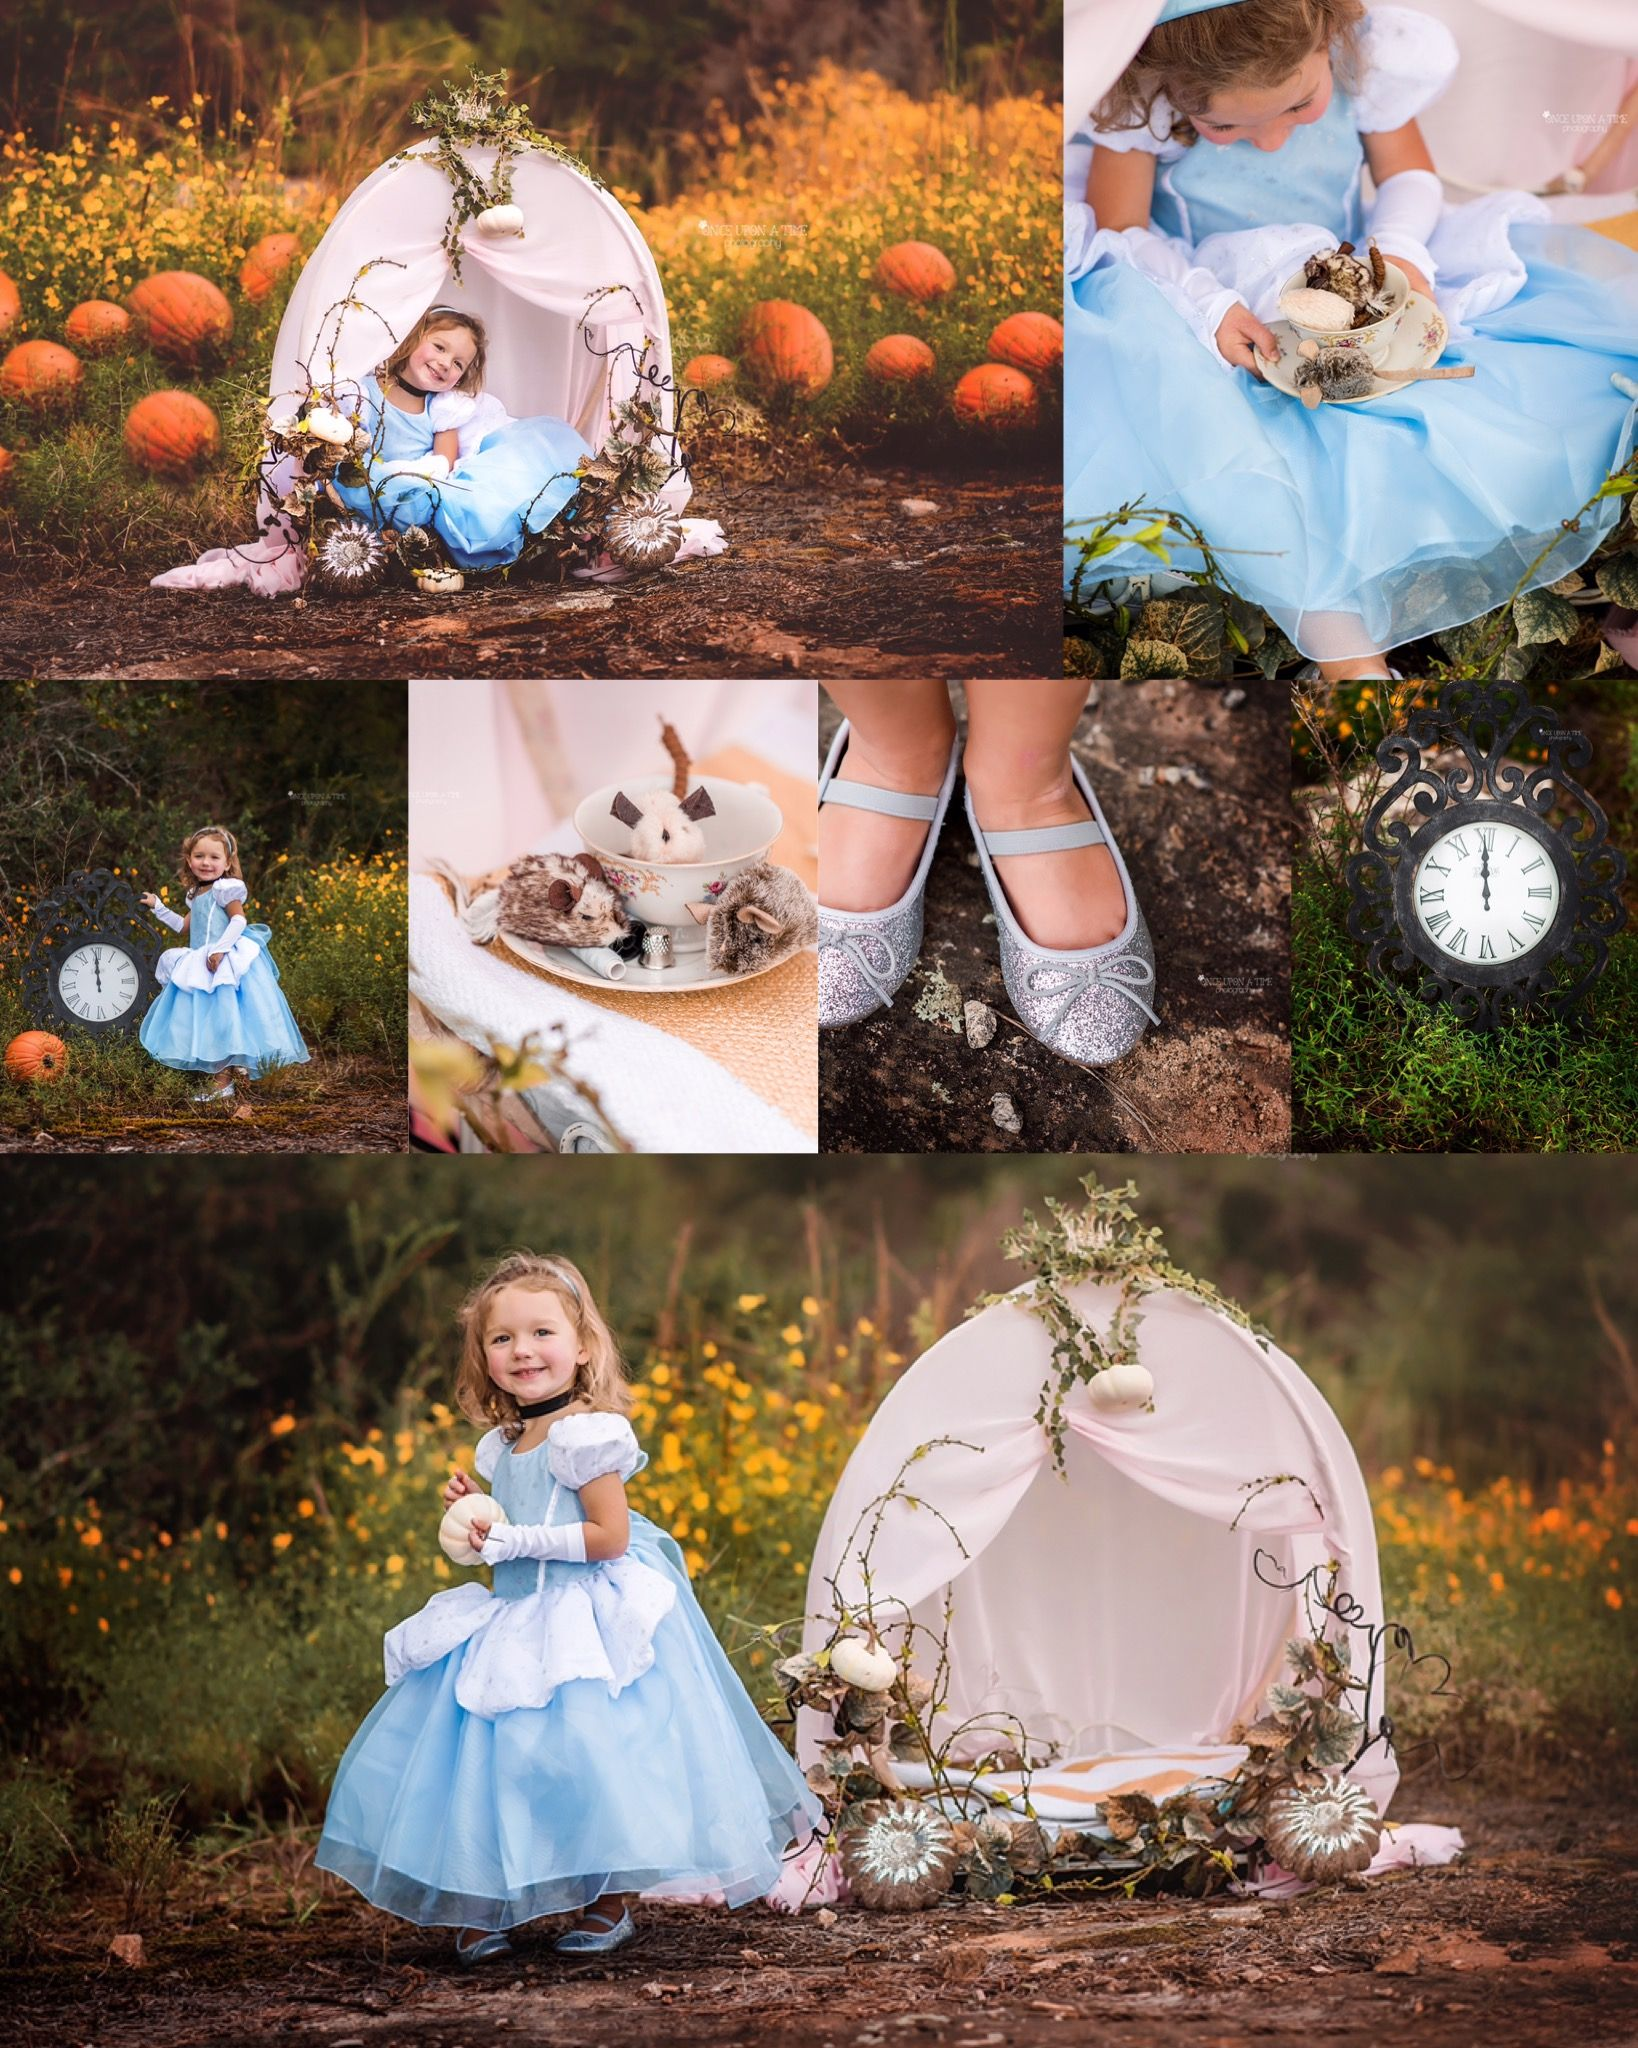 Cinderella themed photo session for little girls! The carriage is a diy  made from an iron dog bed … | Birthday photoshoot, Princess photo shoot,  Toddler photoshoot